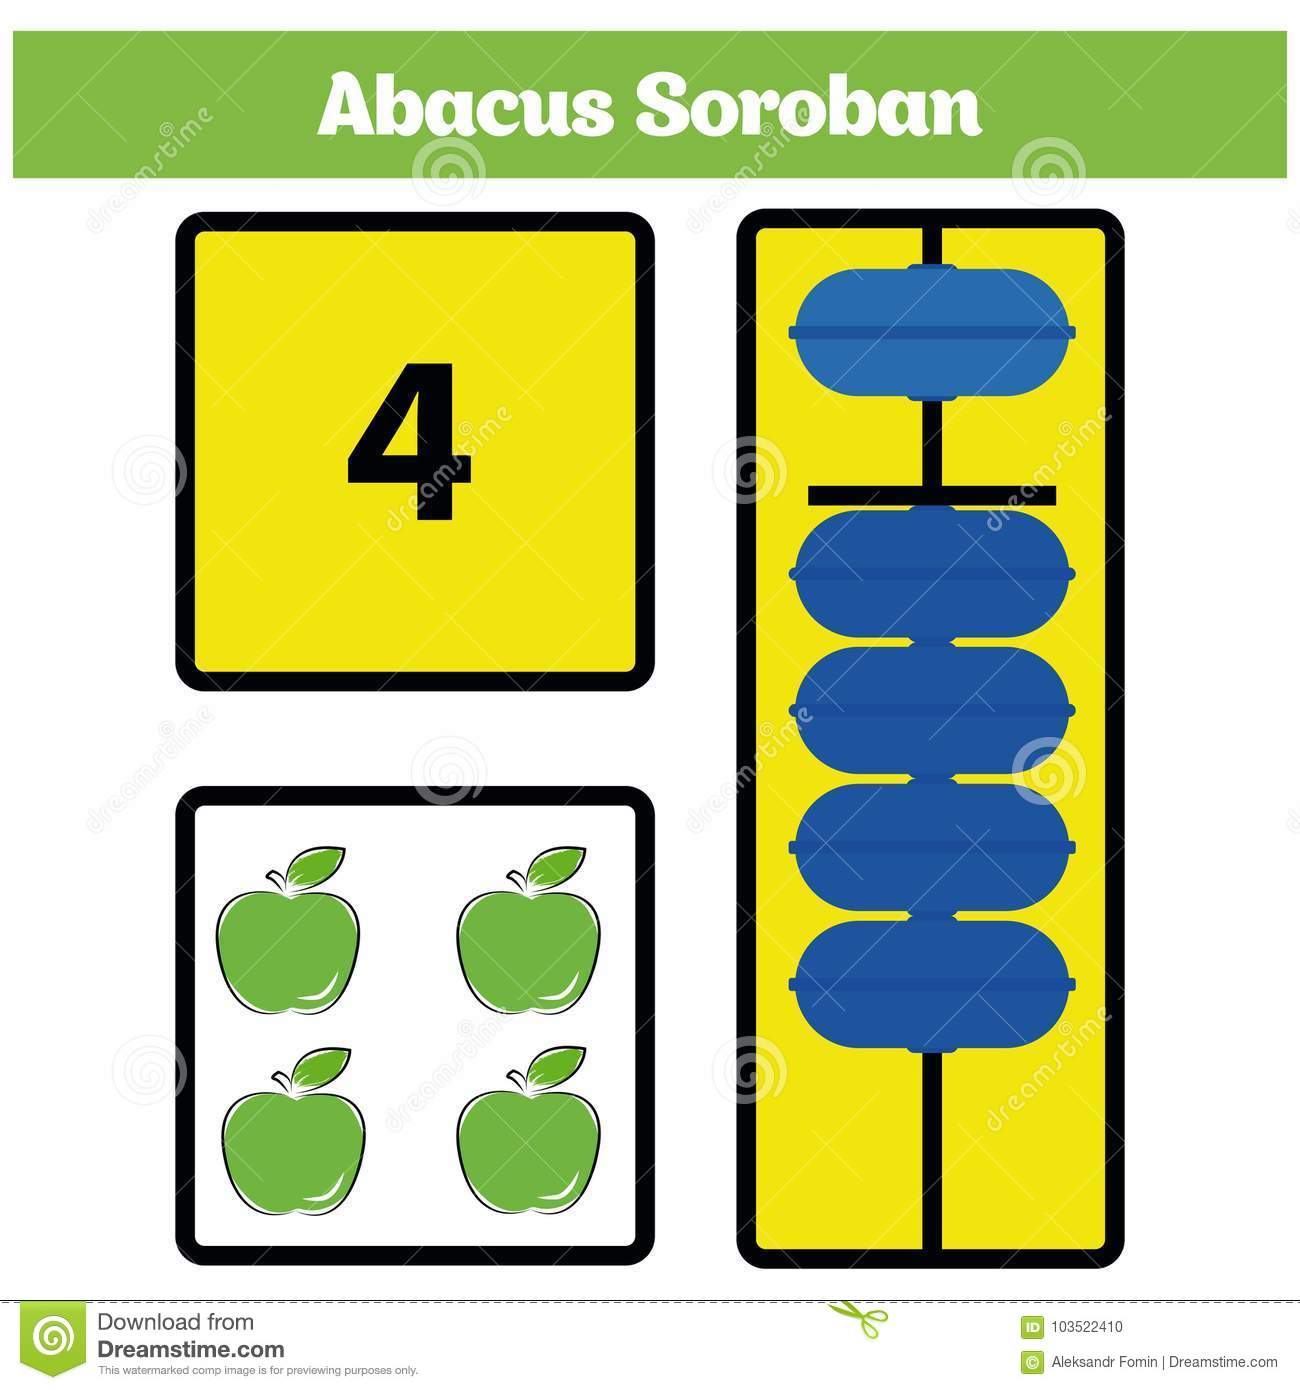 abacus soroban kids learn numbers with abacus math worksheet for children stock illustration. Black Bedroom Furniture Sets. Home Design Ideas